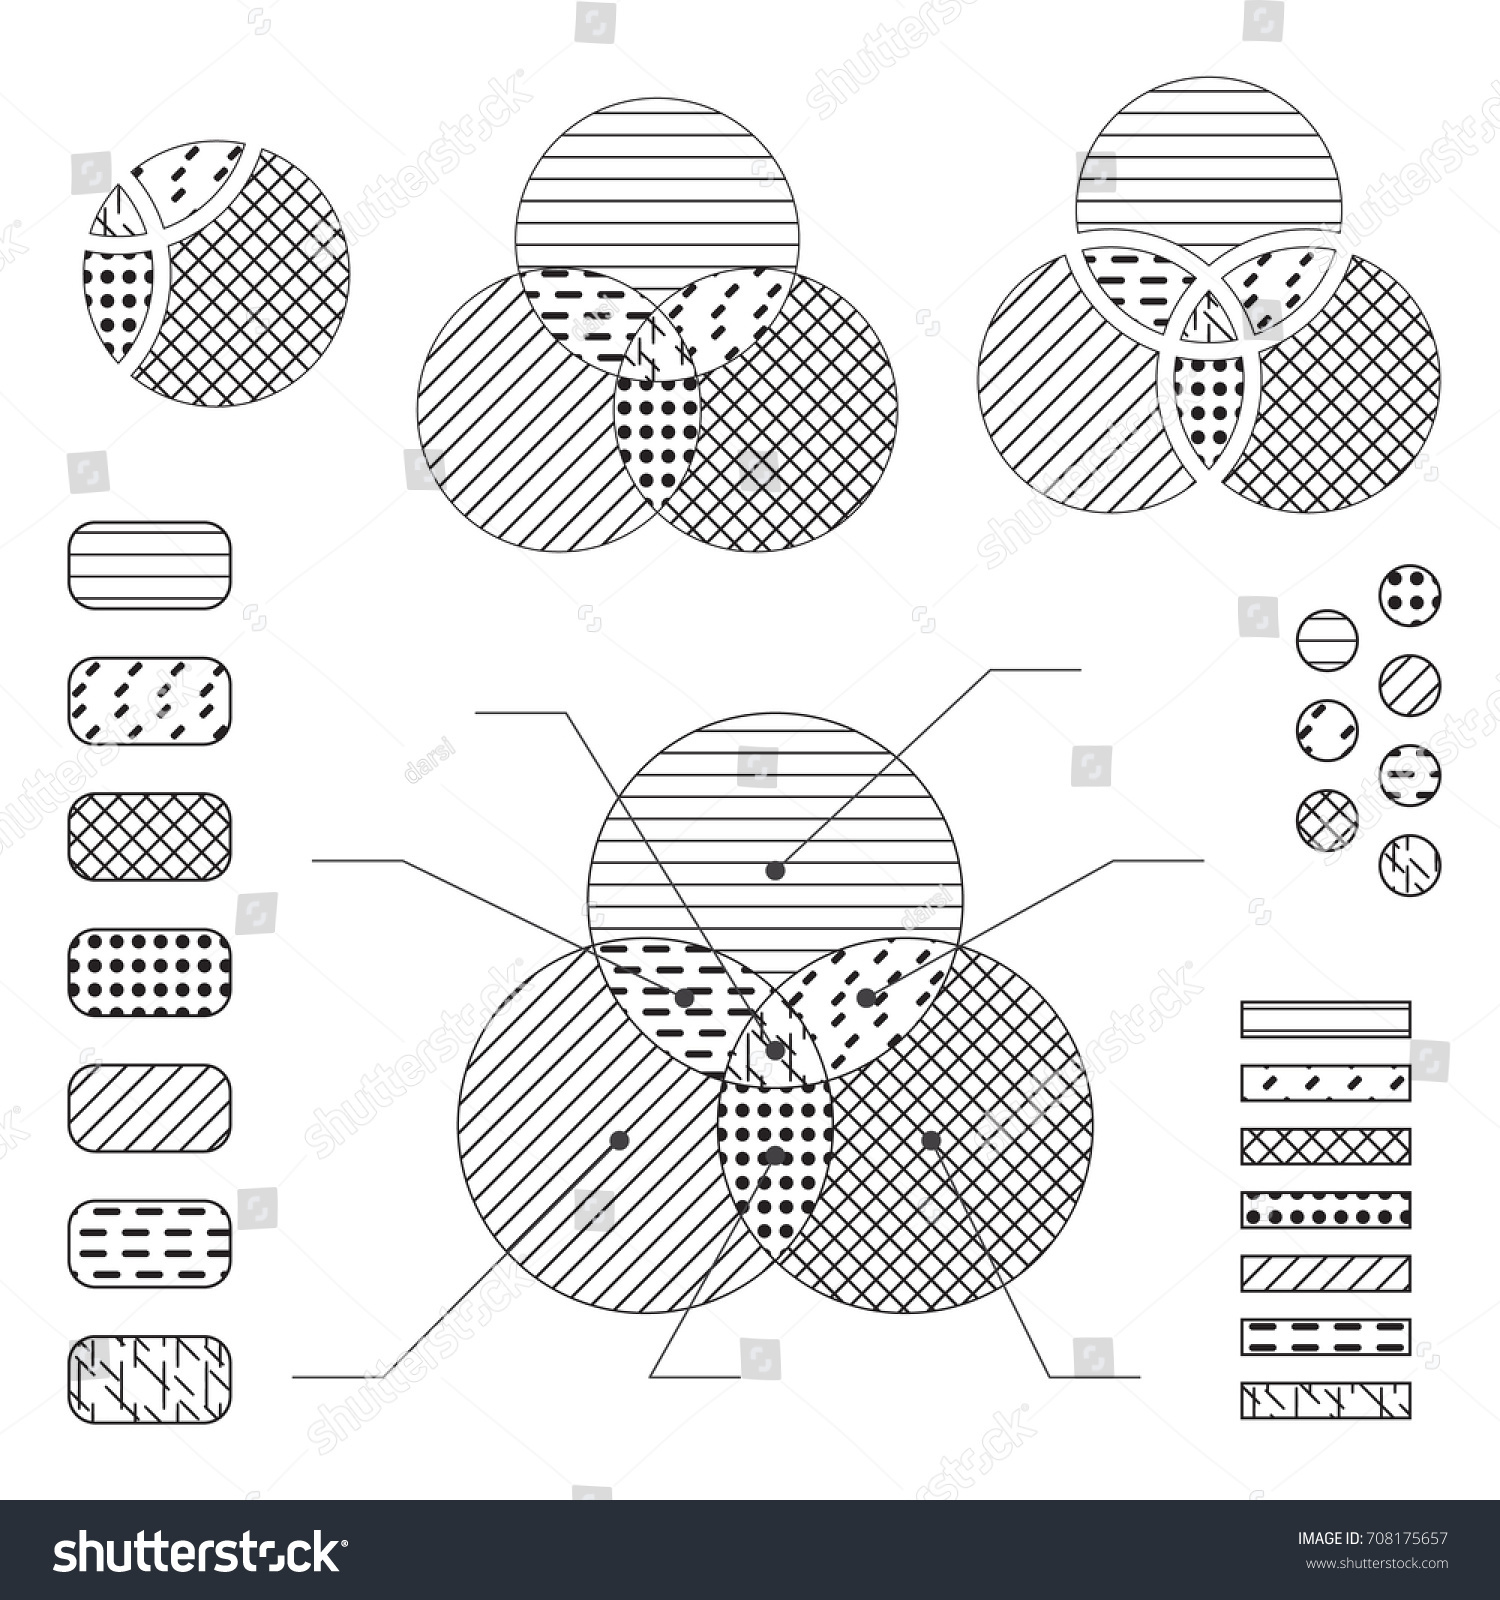 Venn diagram note lines black isolated stock vector 708175657 venn diagram note lines black isolated stock vector 708175657 shutterstock ccuart Choice Image